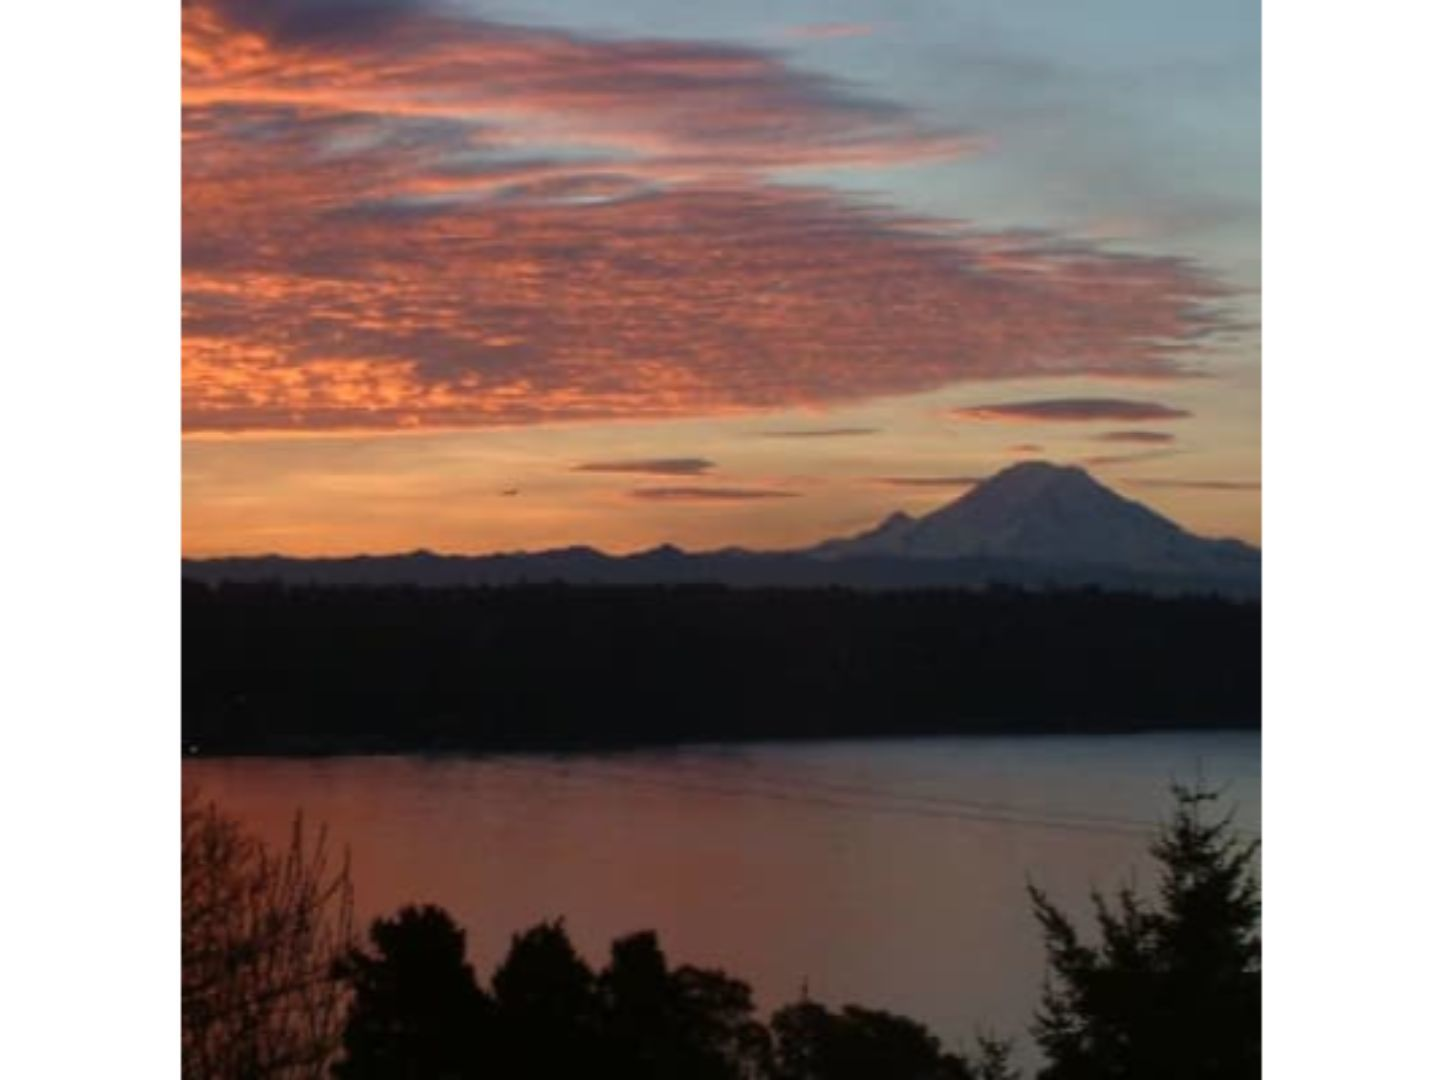 A sunset over a body of water at Three Tree Point Bed & Breakfast.